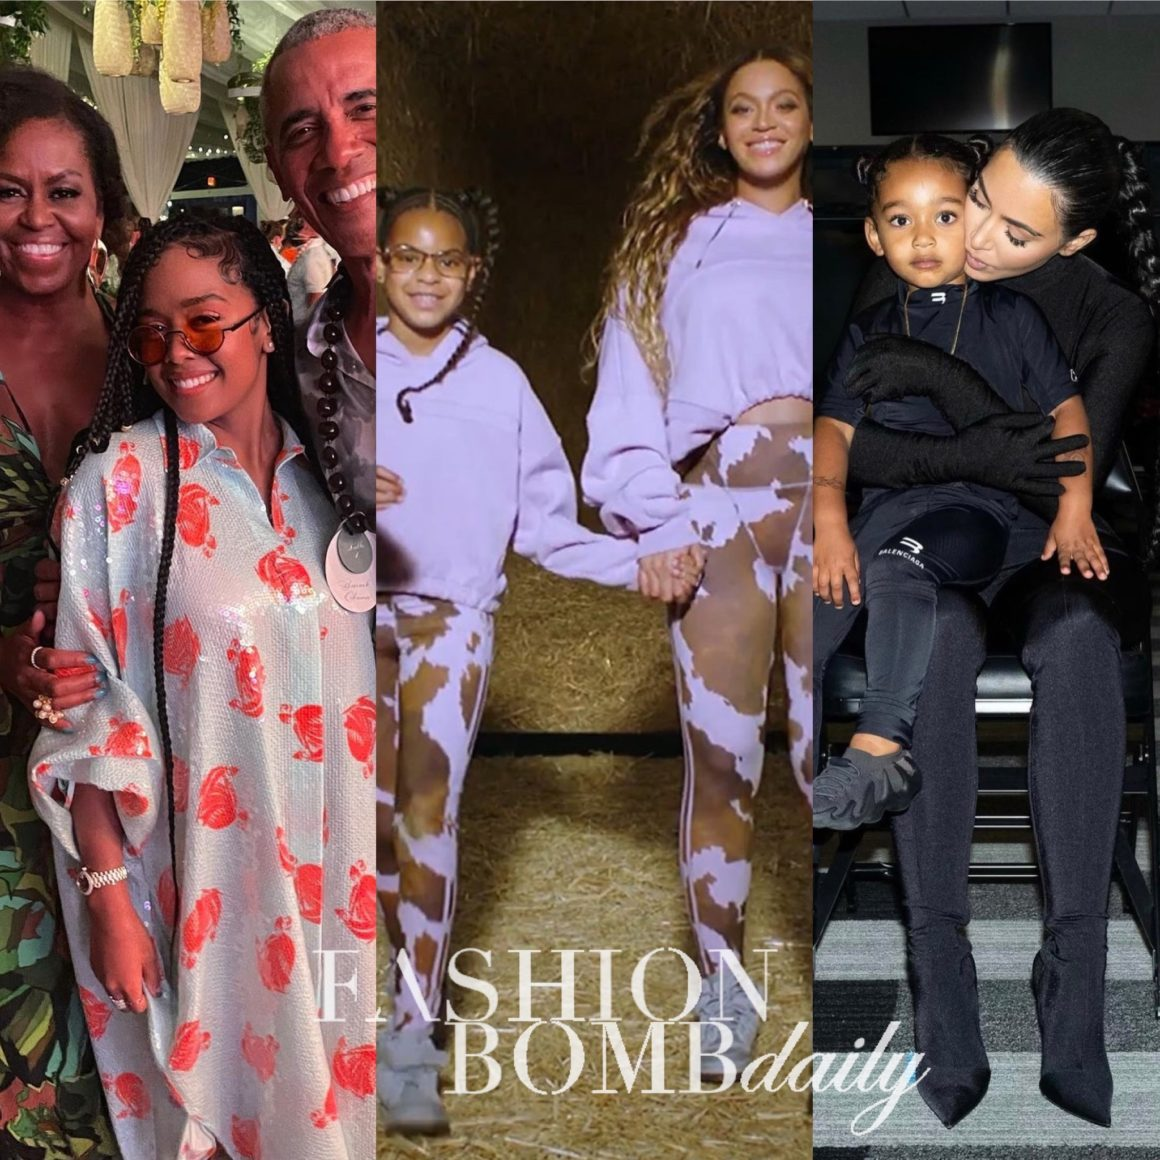 Look of the Week: Beyoncé and Kids in IVY PARK x adidas 'IVY PARK Rodeo', H.E.R. in Lanvin With Barack Obama in Fendi and Michelle Obama in Dundas, Kim Kardashian in Balenciaga + More